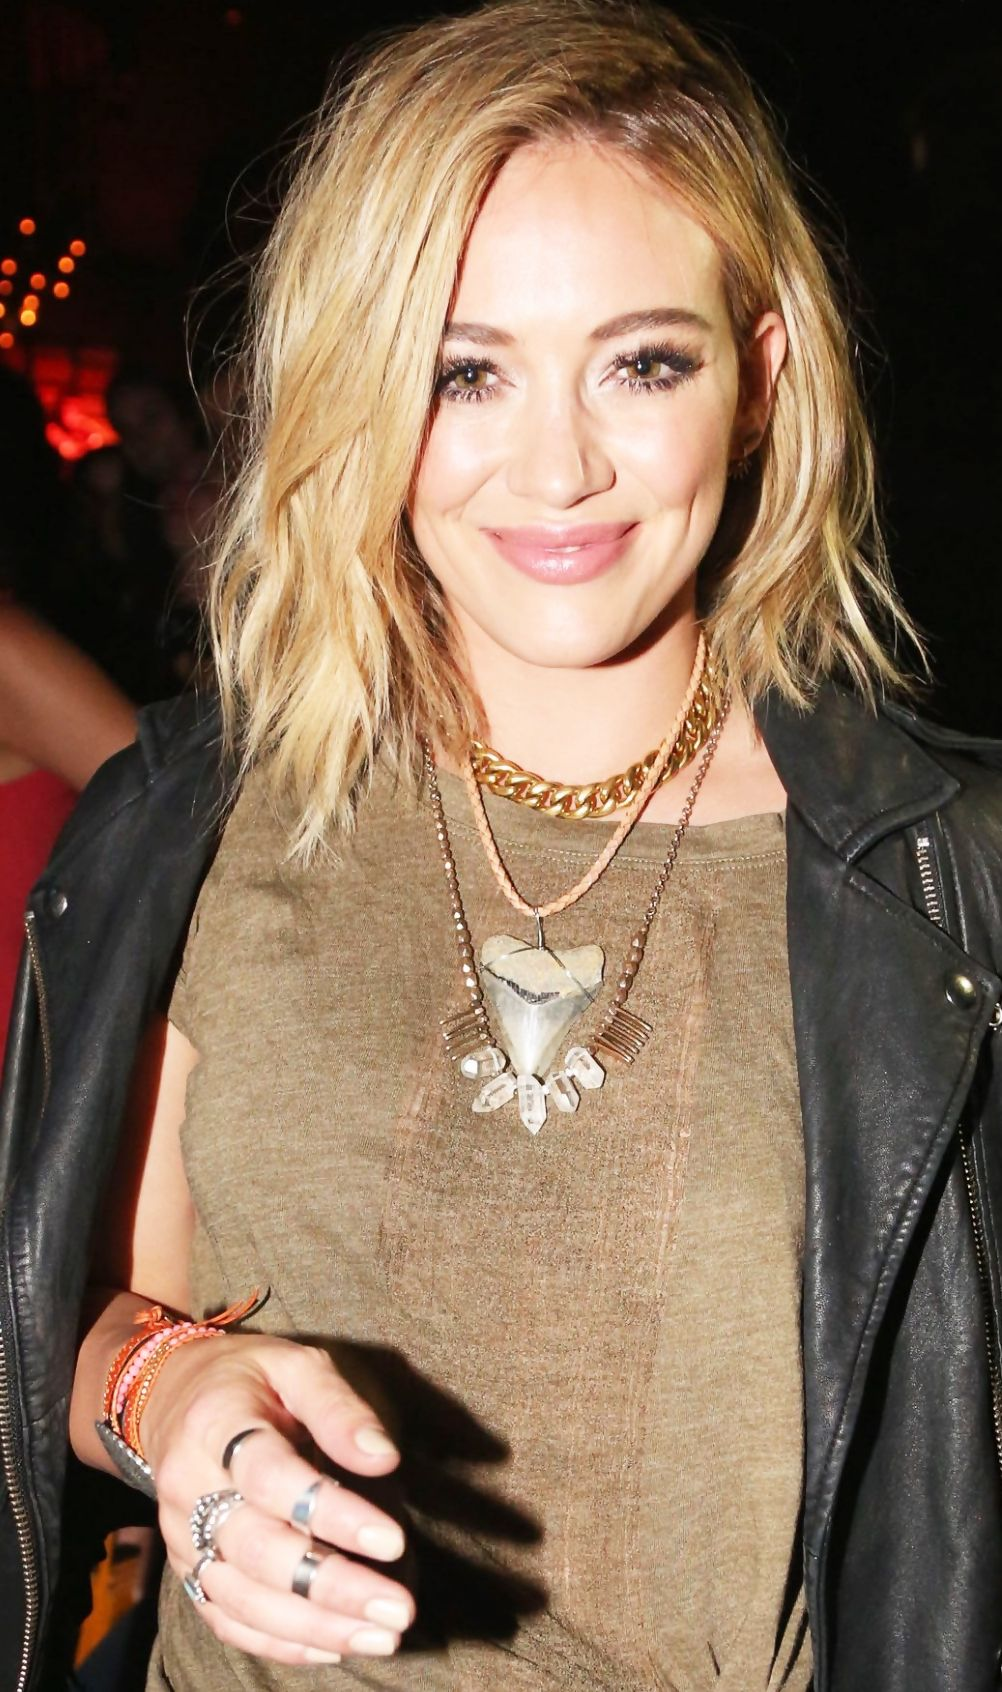 21 Random Questions: Hilary Duff Talks Hair Vitamins, Food Obsessions, and Her Number-One PetPeeve foto